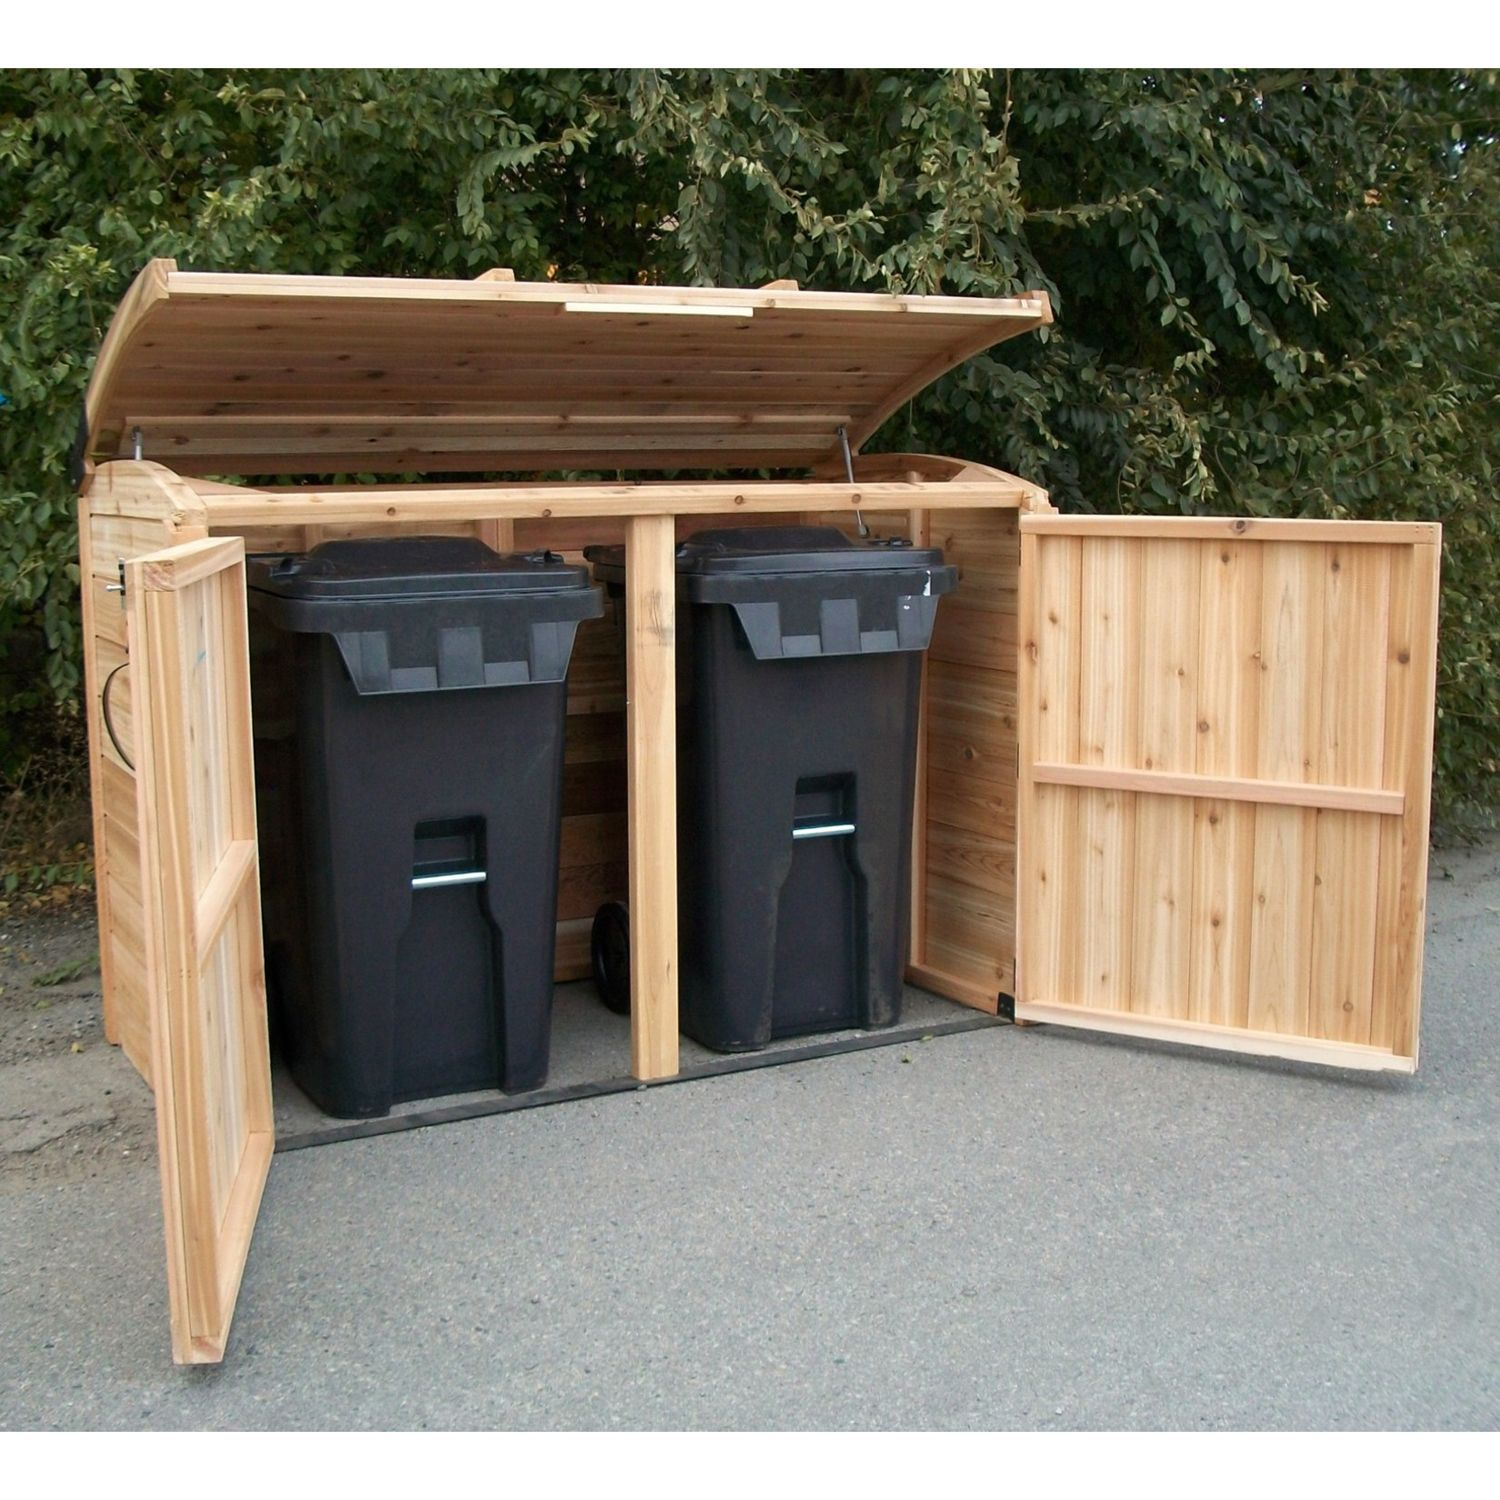 6' x 3' oscar waste management shed | gardening/outdoors | pinterest